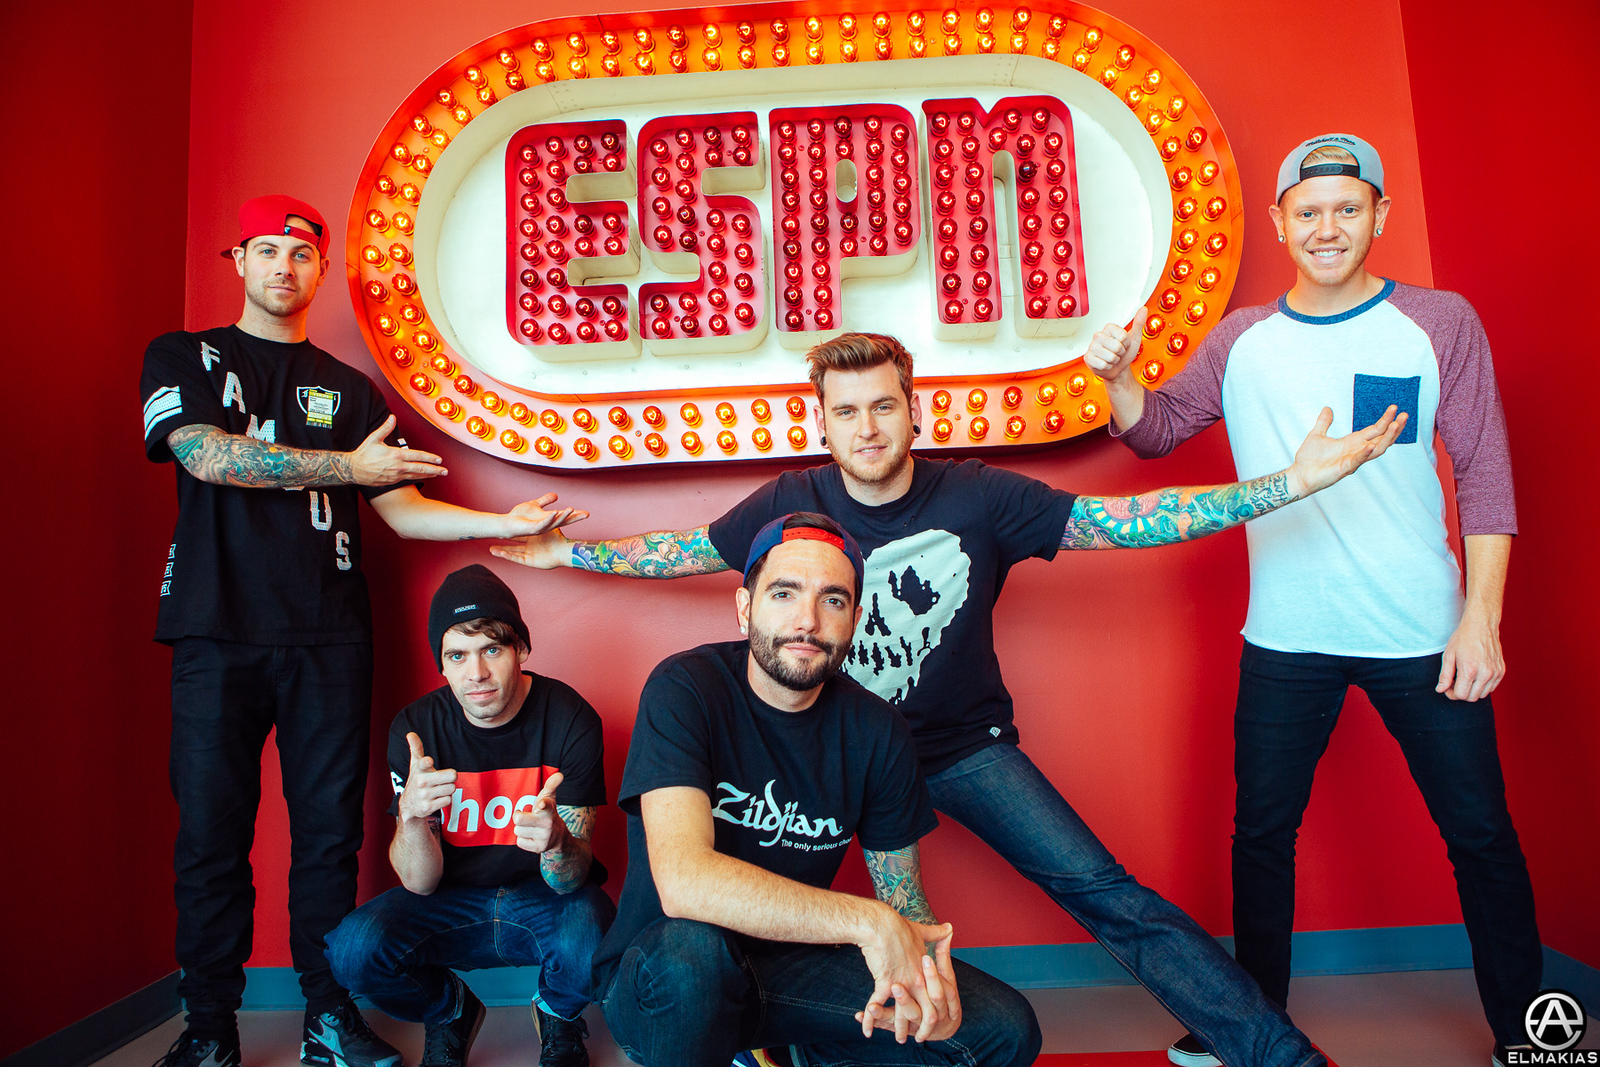 ESPN with A Day To Remember, this is their original sign by Adam Elmakias